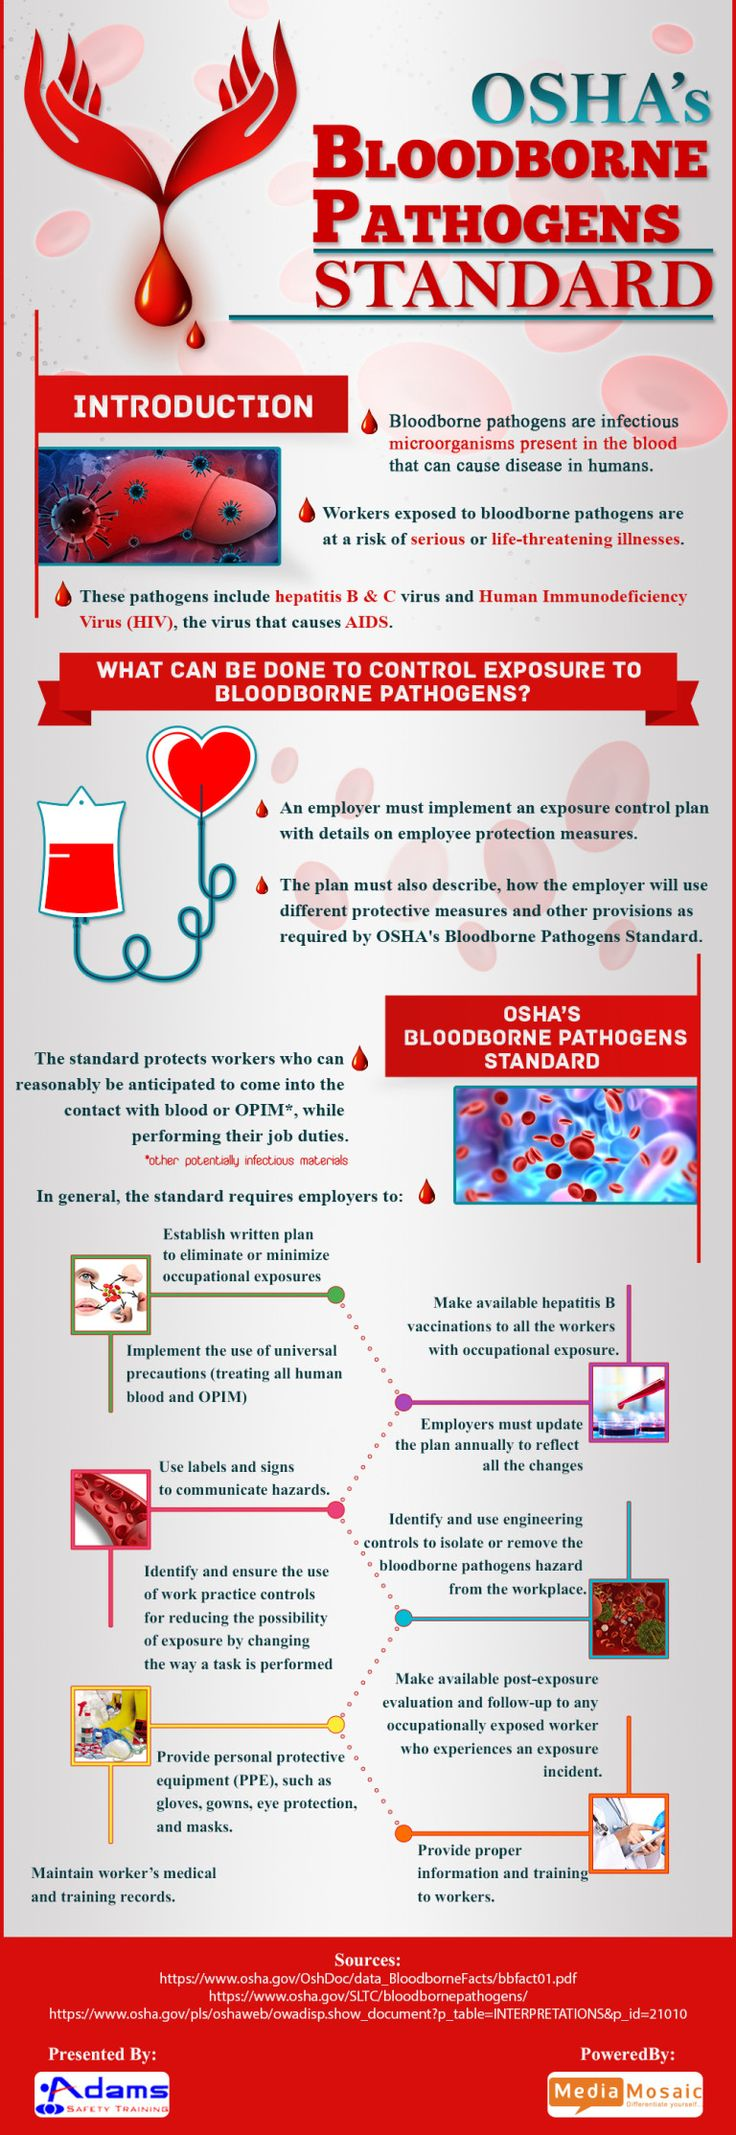 """Bloodborne pathogens are infectious microorganism present in the human blood that can cause diseases in humans. The given Infographic will help to bring some facts about these pathogens into the light. Workers in many departments such as nurses, responders and health care providers are explicitly exposed to these pathogens that accentuate hepatitis B (HBV), hepatitis C (HCV) and human immunodeficiency virus (HIV) and many more disease-causing viruses."""